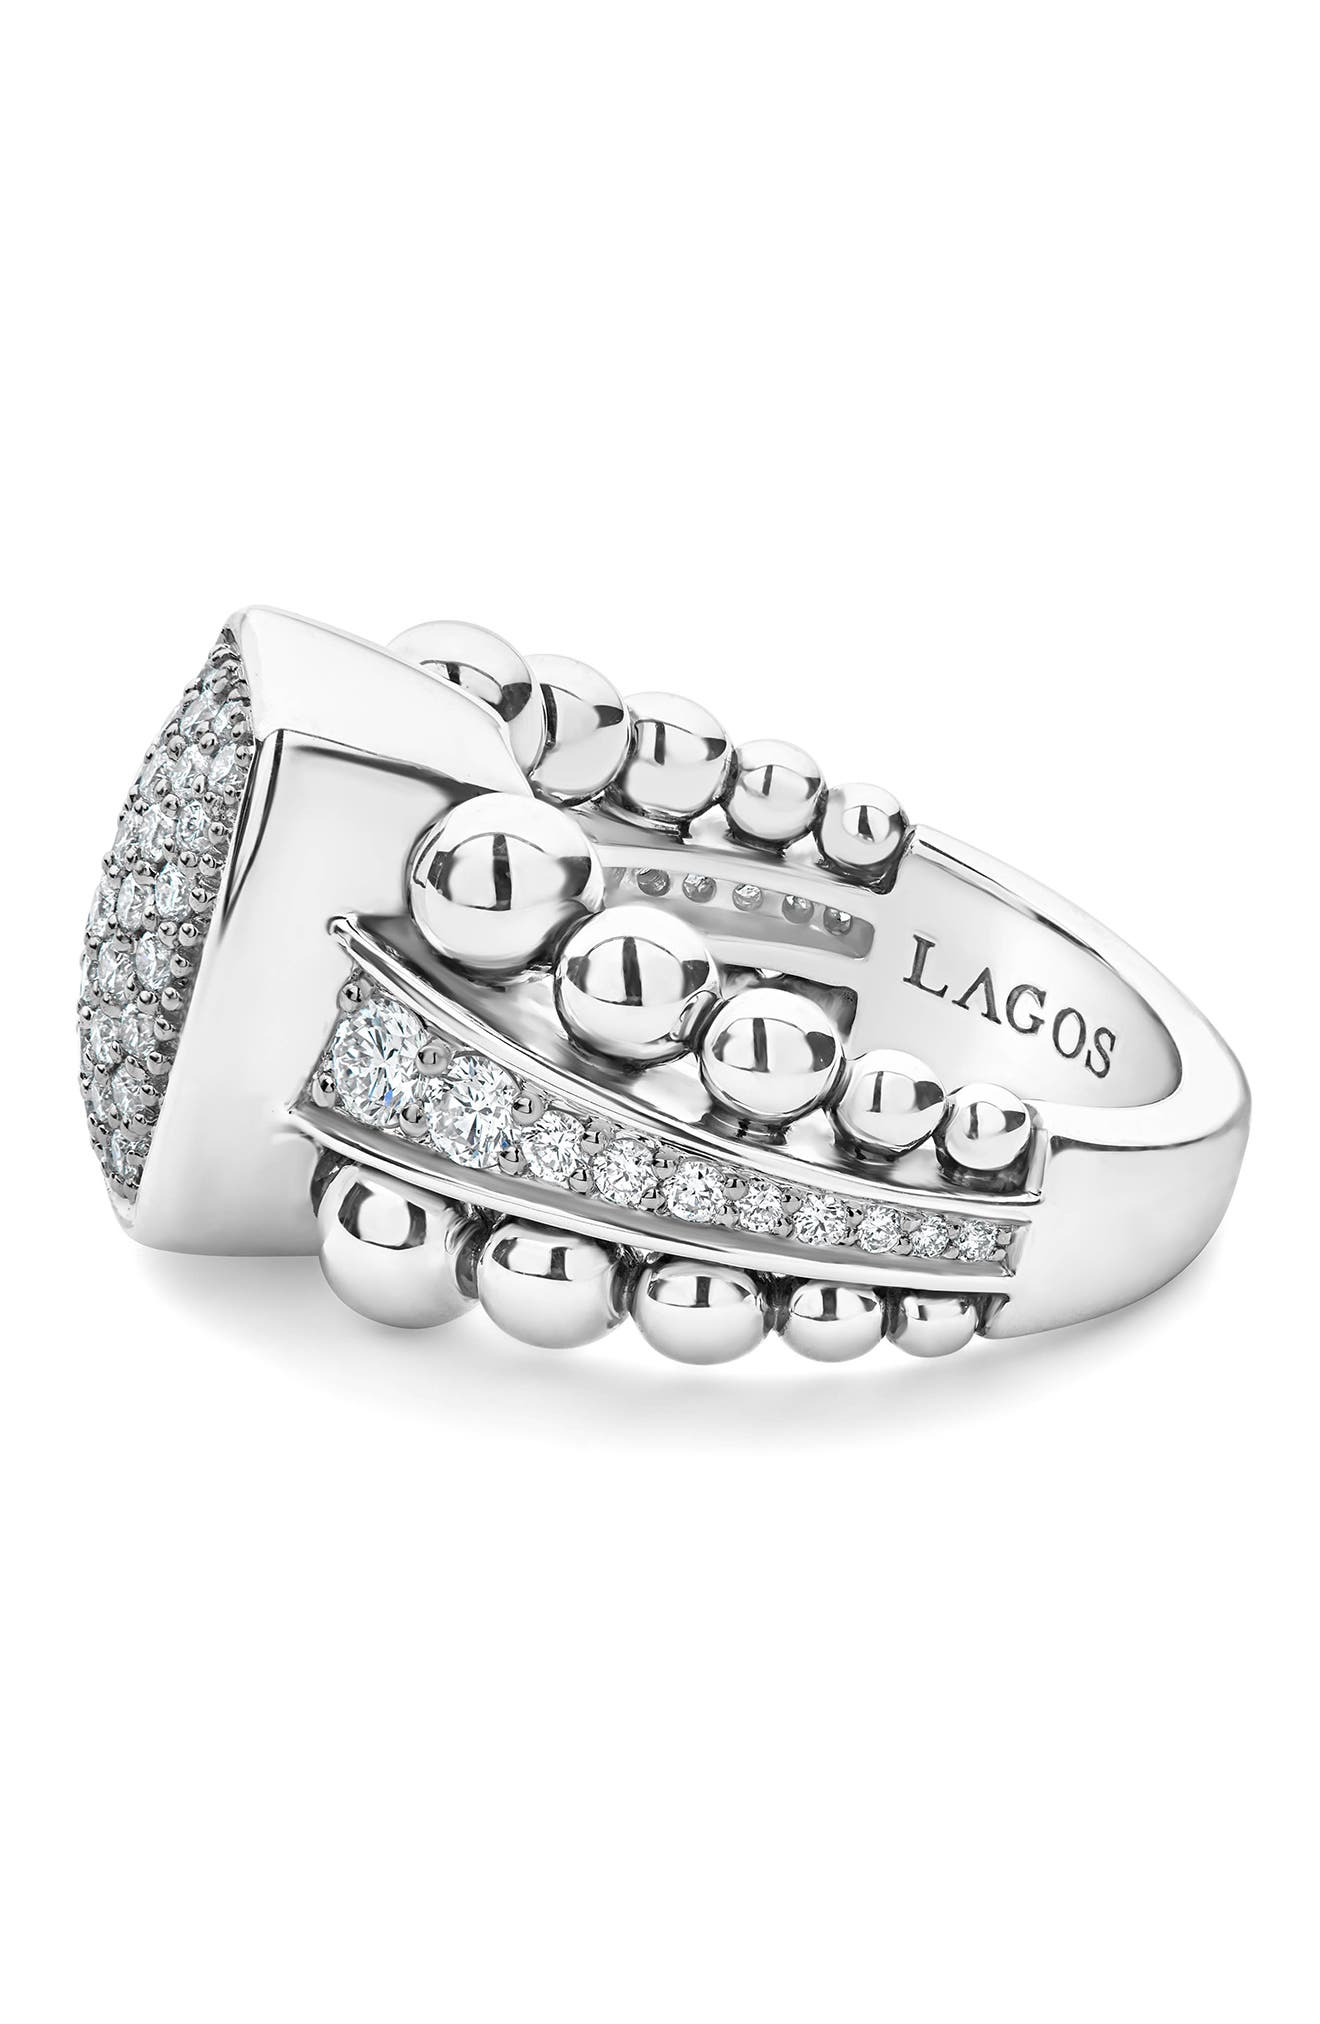 LAOGS Caviar Spark Vertical Statement Ring,                             Alternate thumbnail 3, color,                             SILVER/ DIAMOND